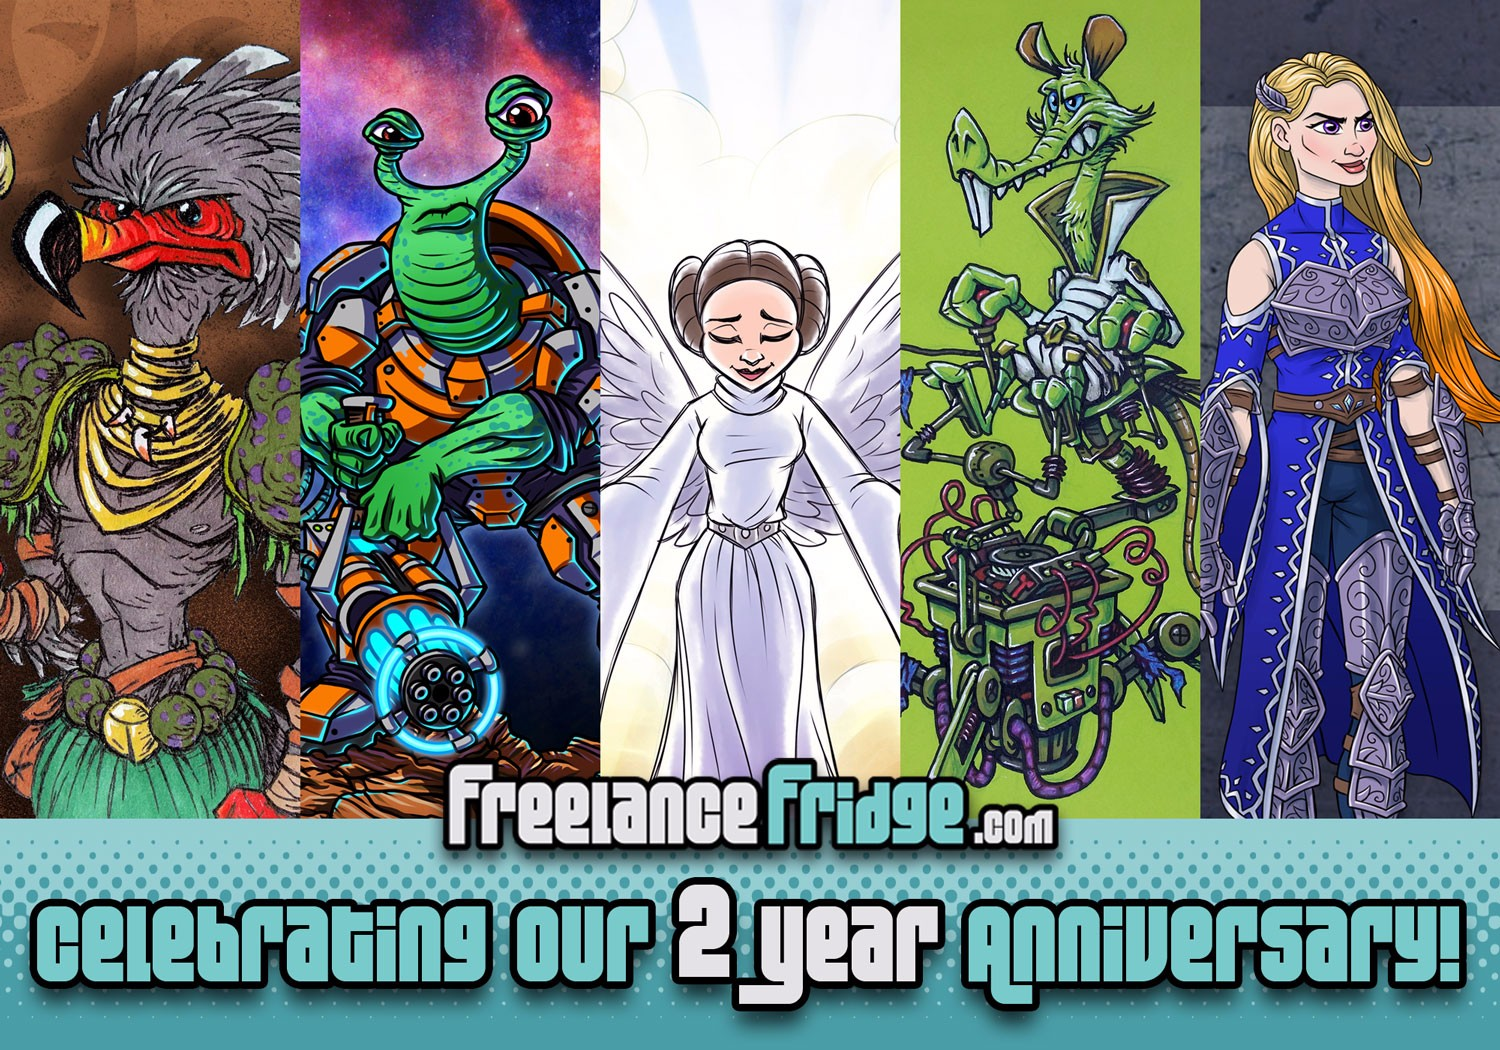 Freelance Fridge Full-Time Freelance Artist 2nd Anniversary in Business Creating Character Artwork and Illustrations